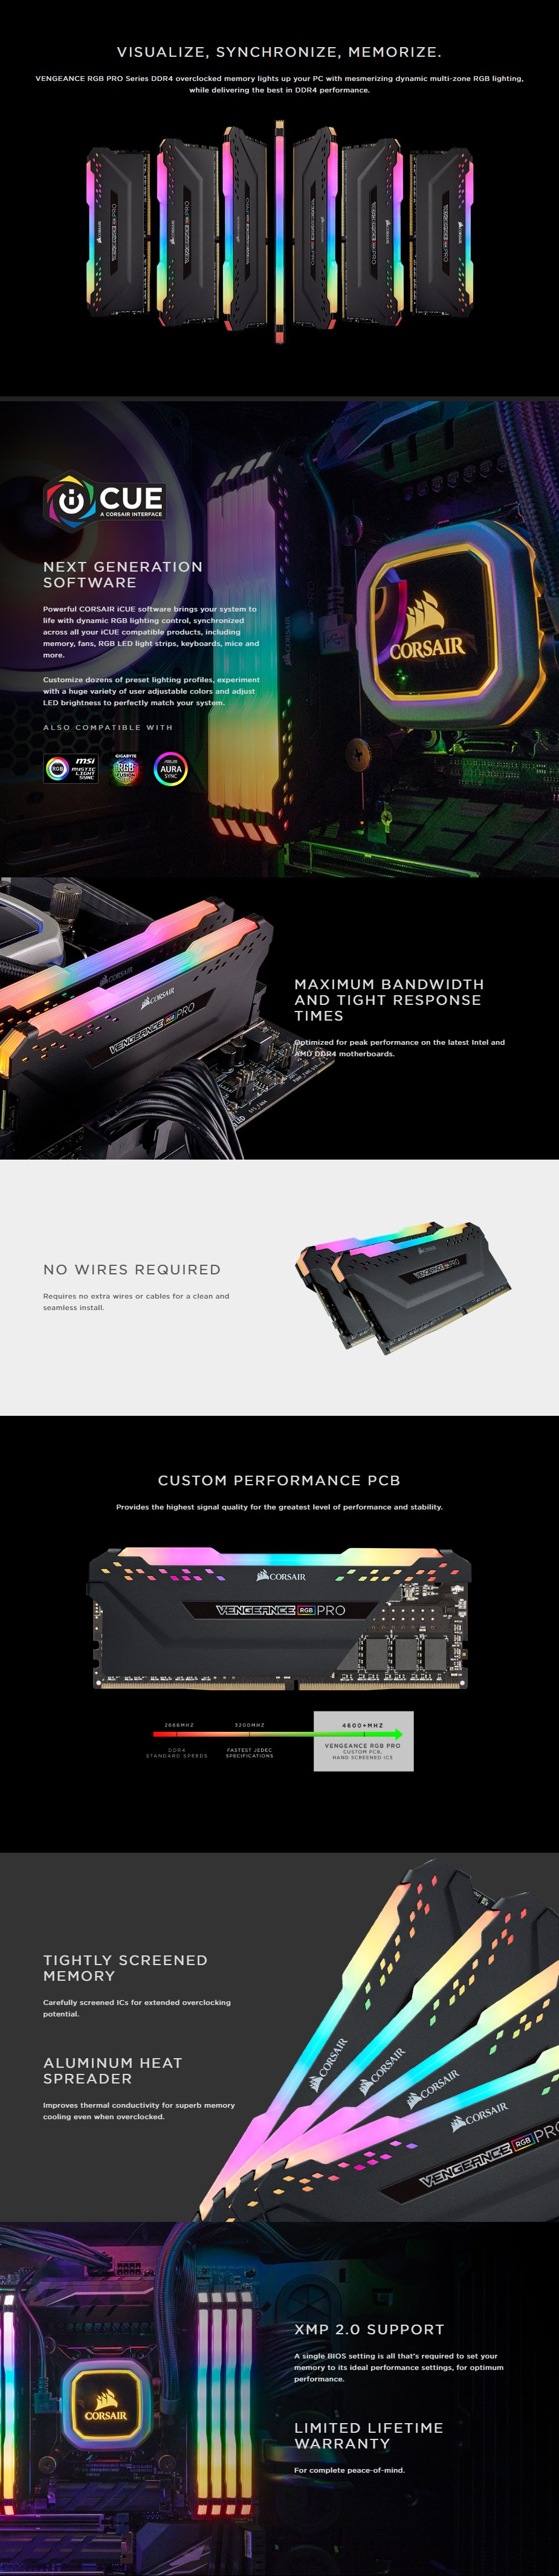 Corsair Vengeance RGB PRO 32GB (2x 16GB) DDR4 3200MHz Memory - Black  - Overview 1